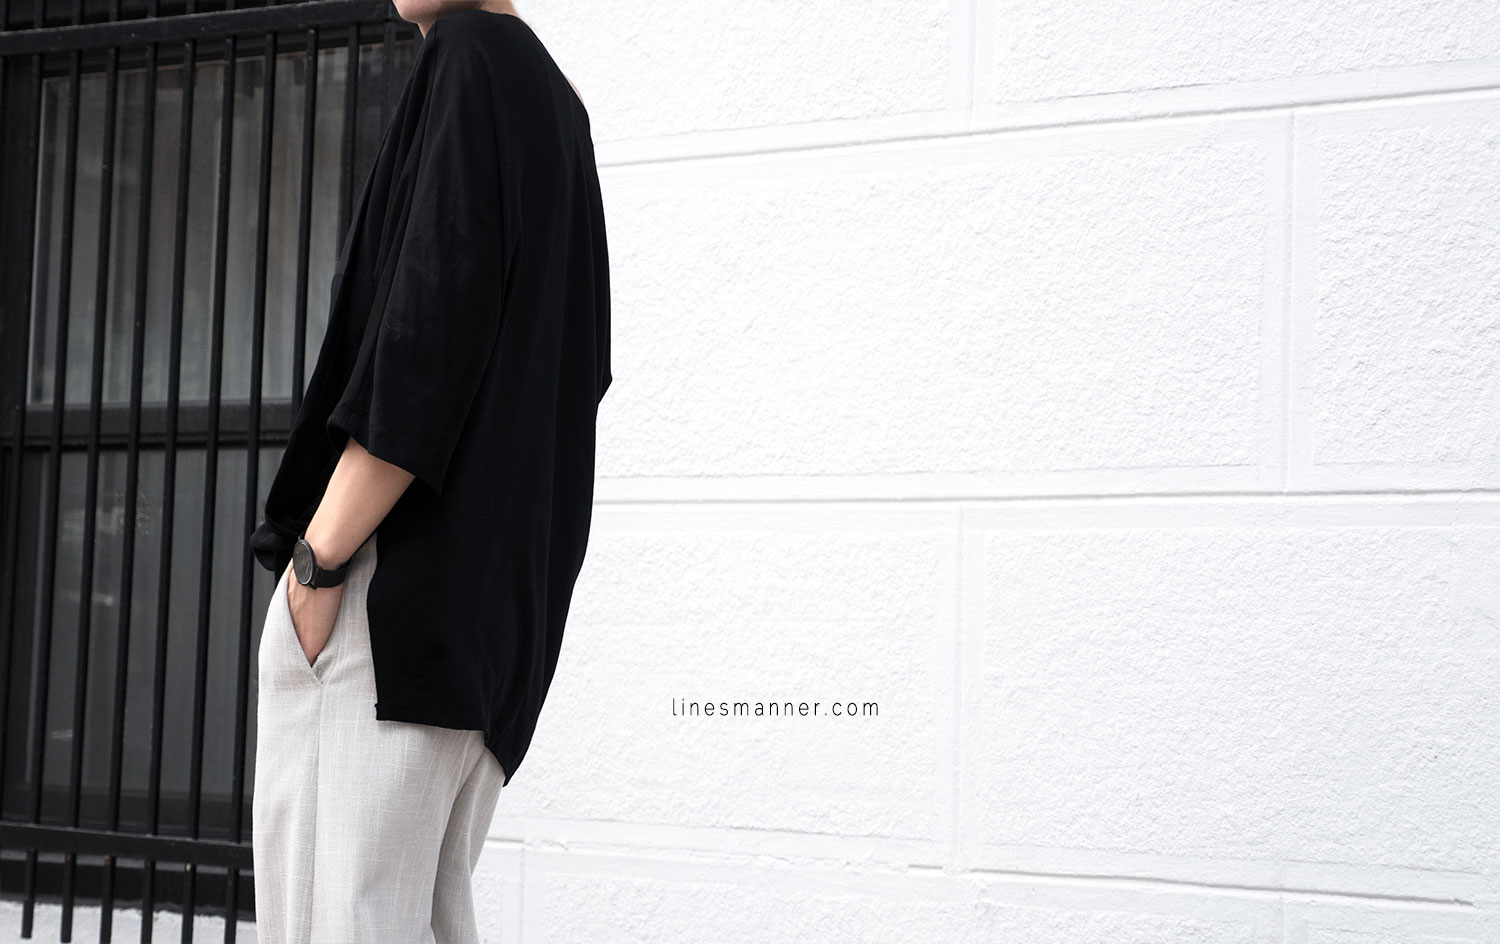 Lines-Manner-Modern-Minimal-Effortless-Casual-Wide_Leg_Culotte-Coidlyn_Wight-Draped-Coton-Linen-Sustainable-Slow_Fashion-Neutrals-Structure-Volume-Fluid-Simplicity-Details-2